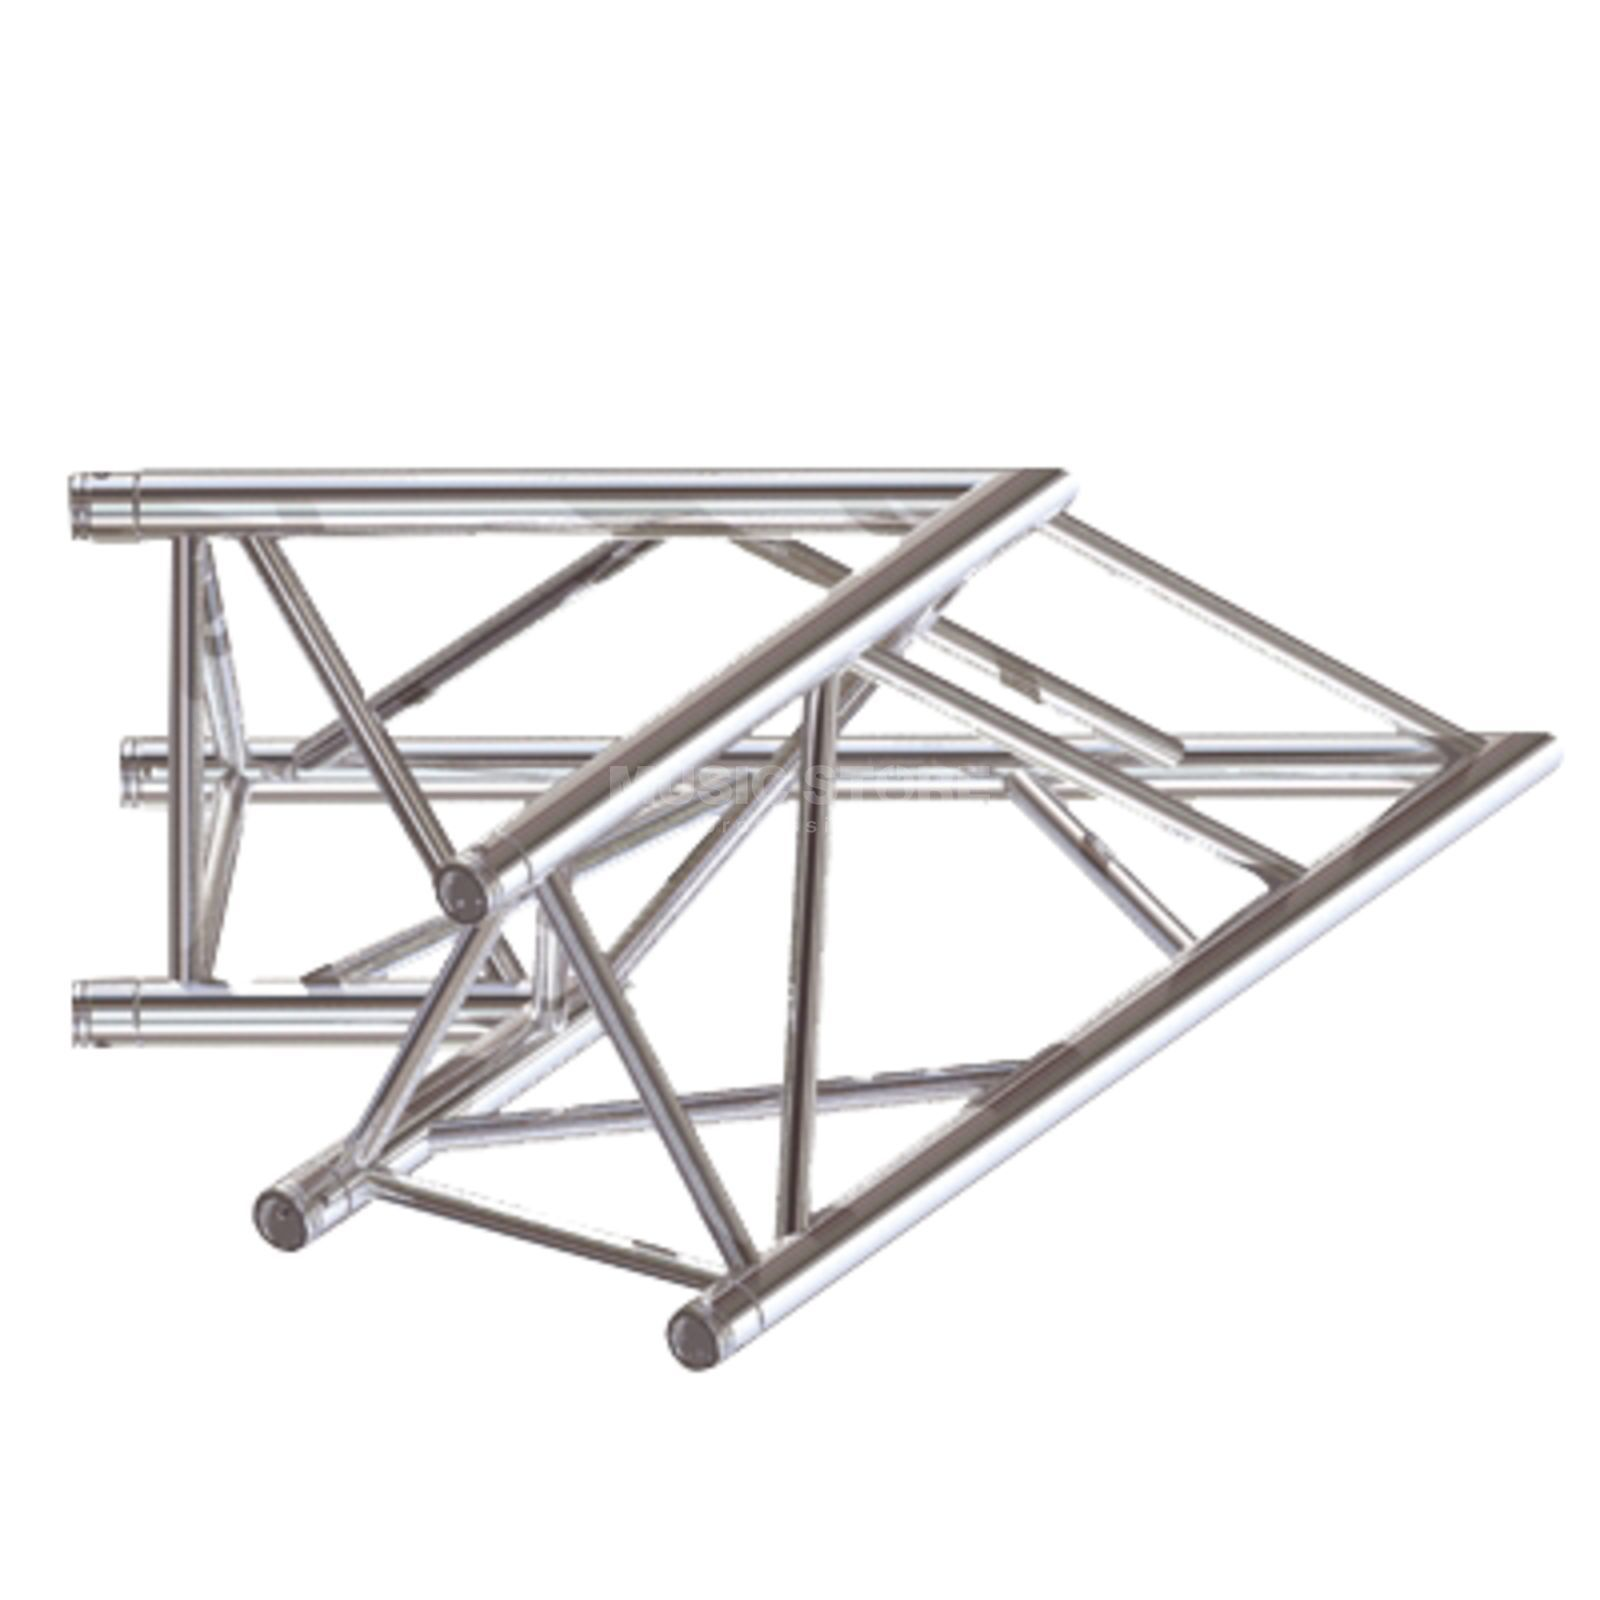 Global Truss F43 2-Way Corner C20 60°  Produktbillede